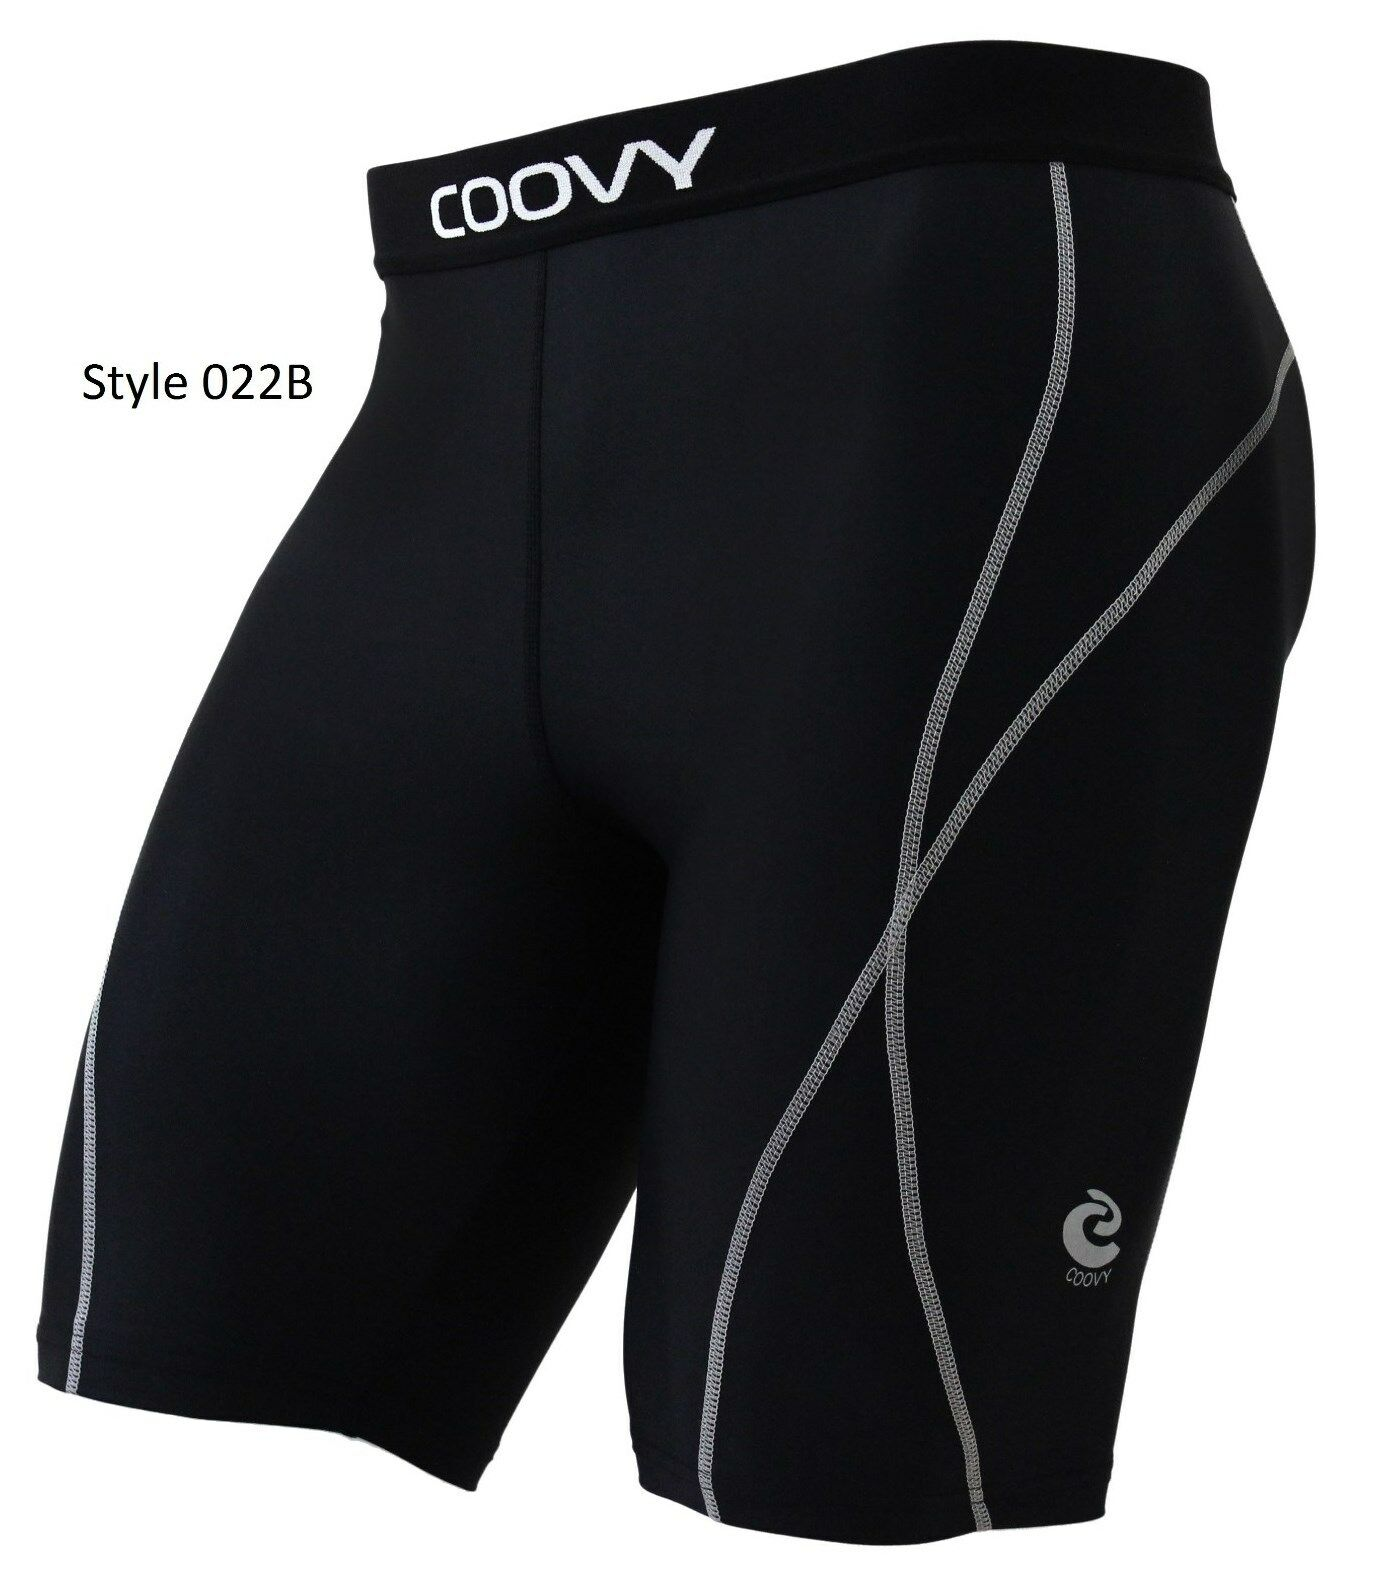 022B Black High Compression Short